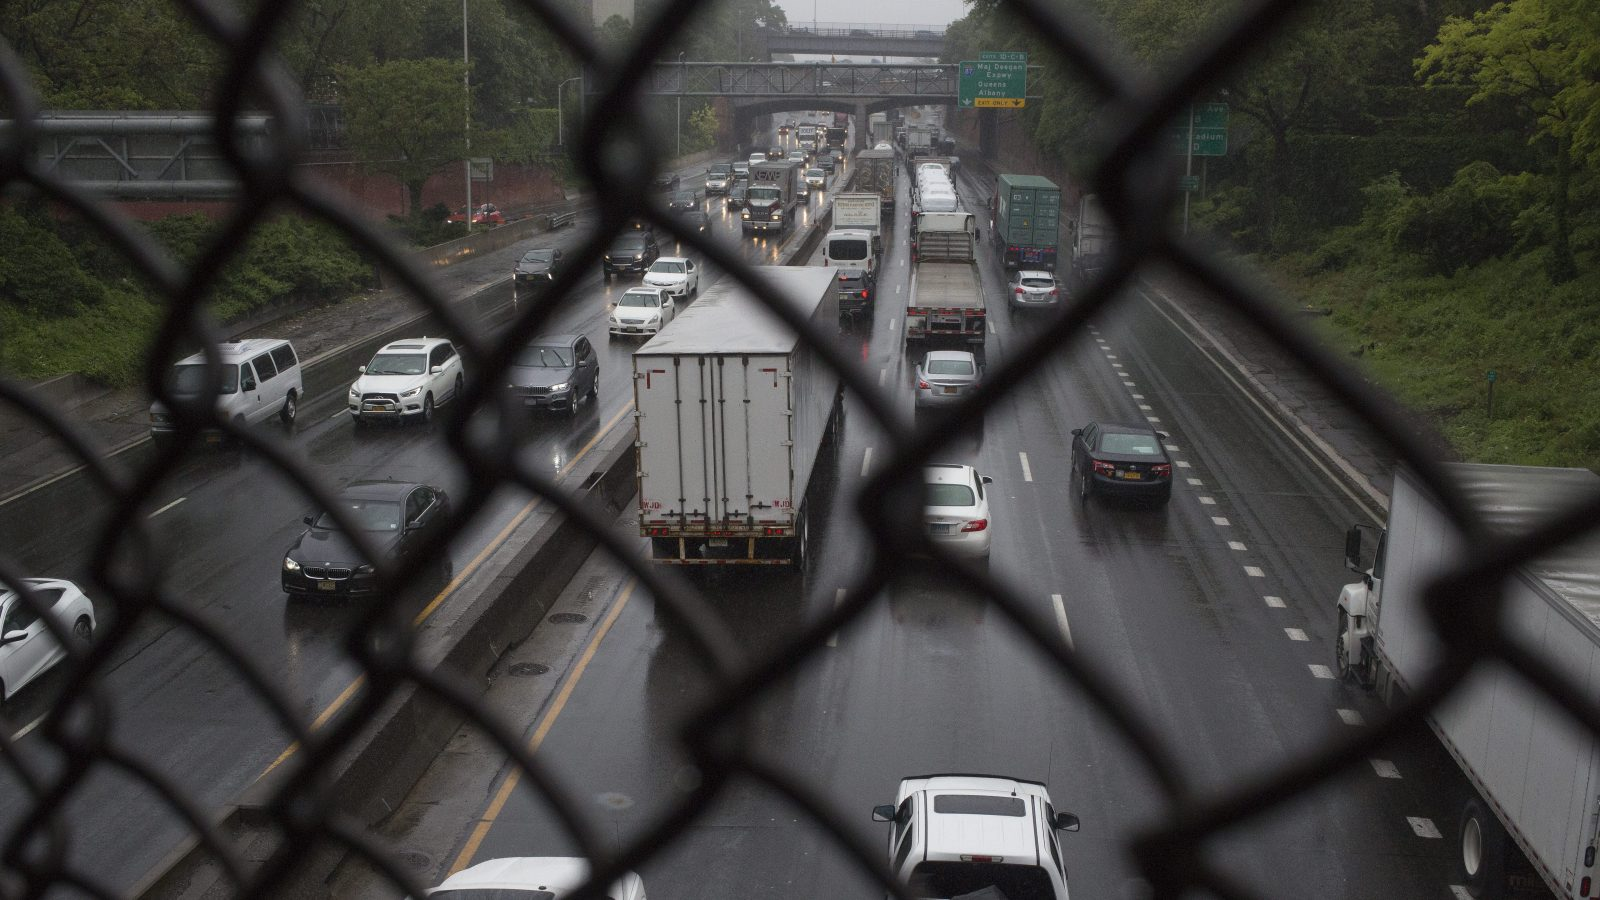 Trucks and cars driving on the Cross Bronx Expressway in the Bronx, New York